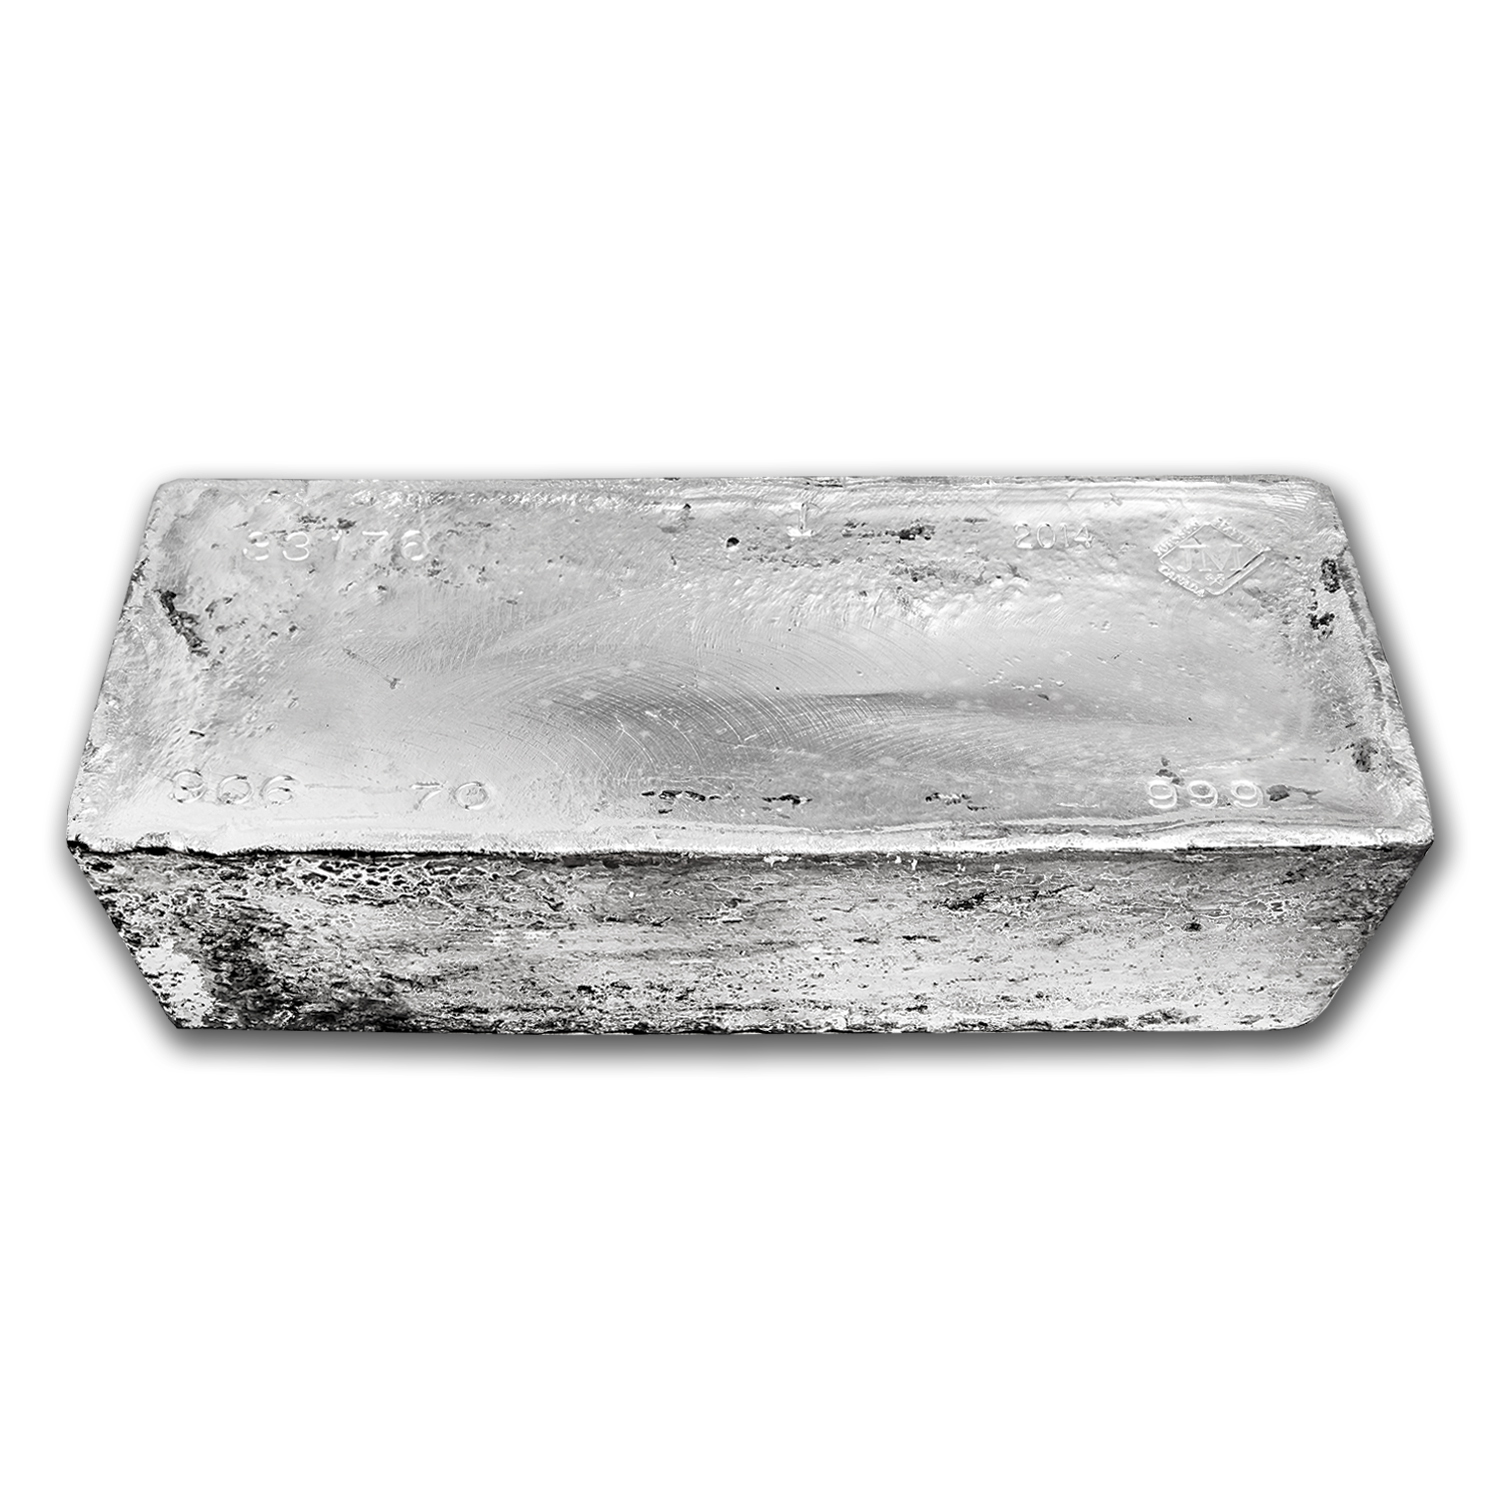 987.20 oz Silver Bar - Johnson Matthey